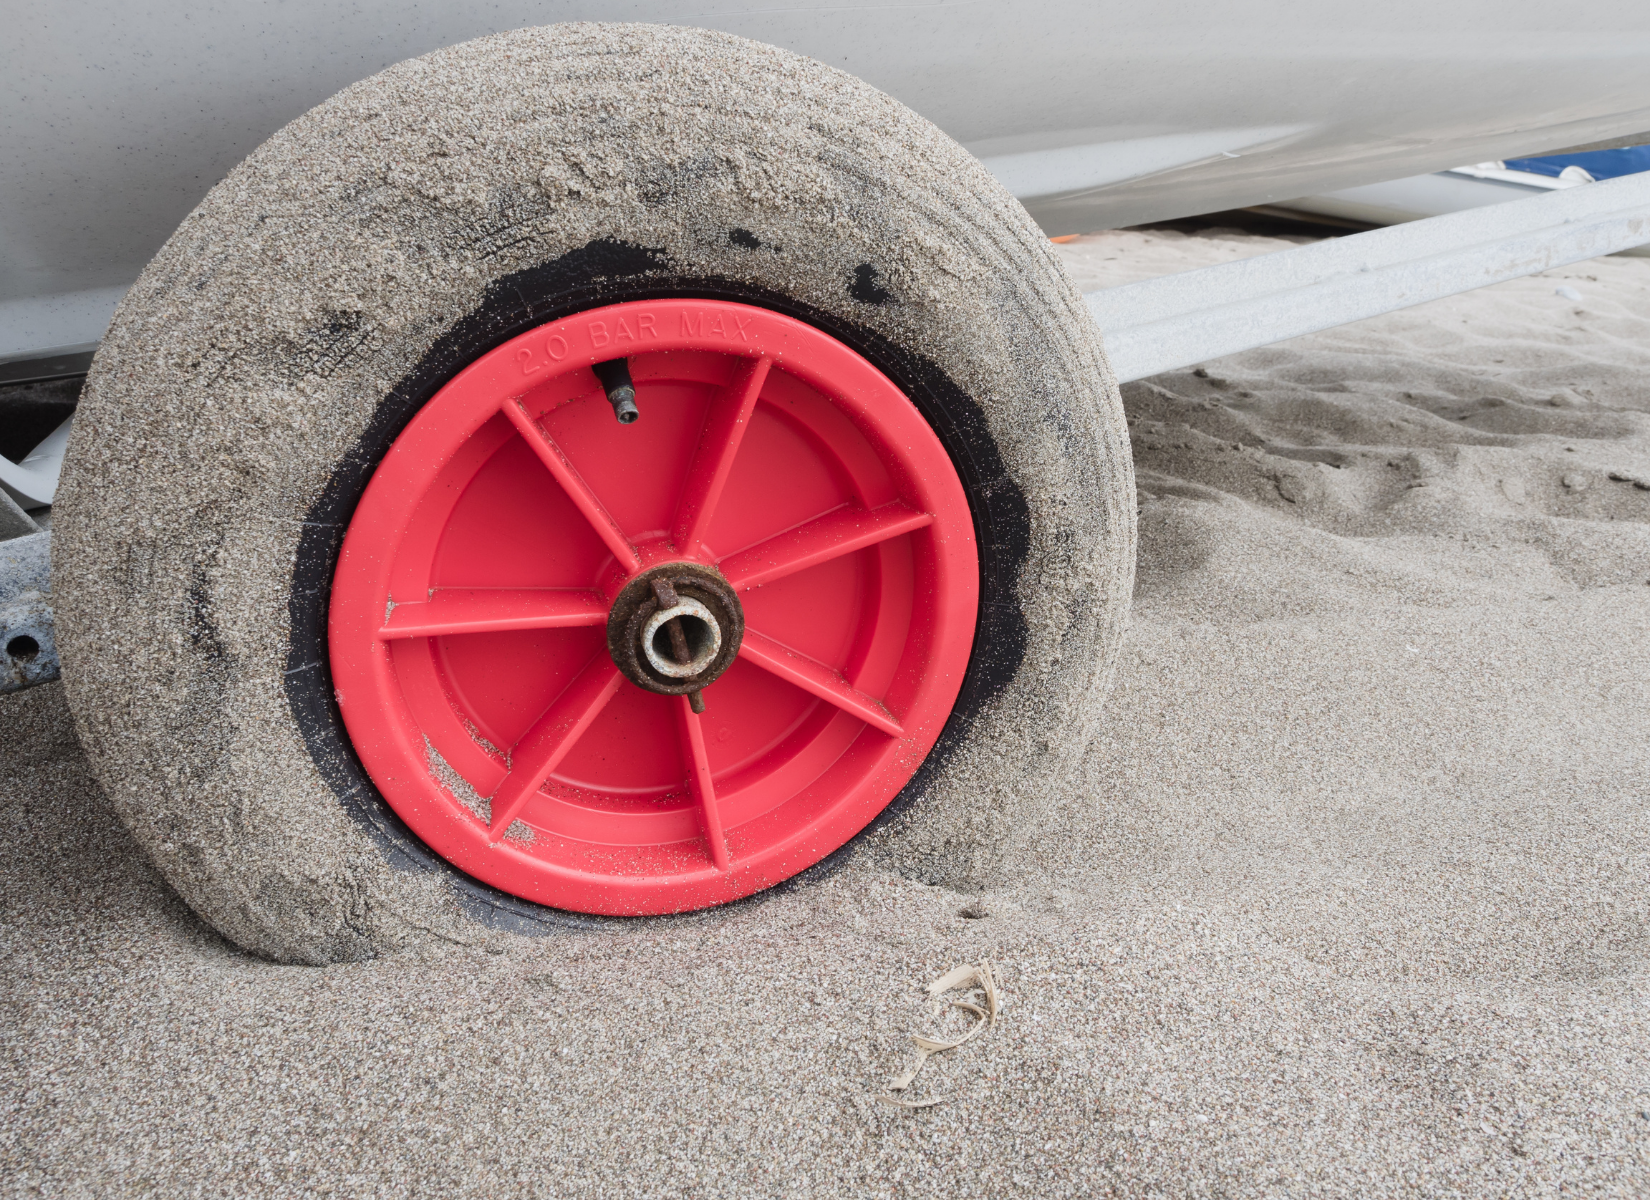 Best gifts for the boater - Carrier with Wheels